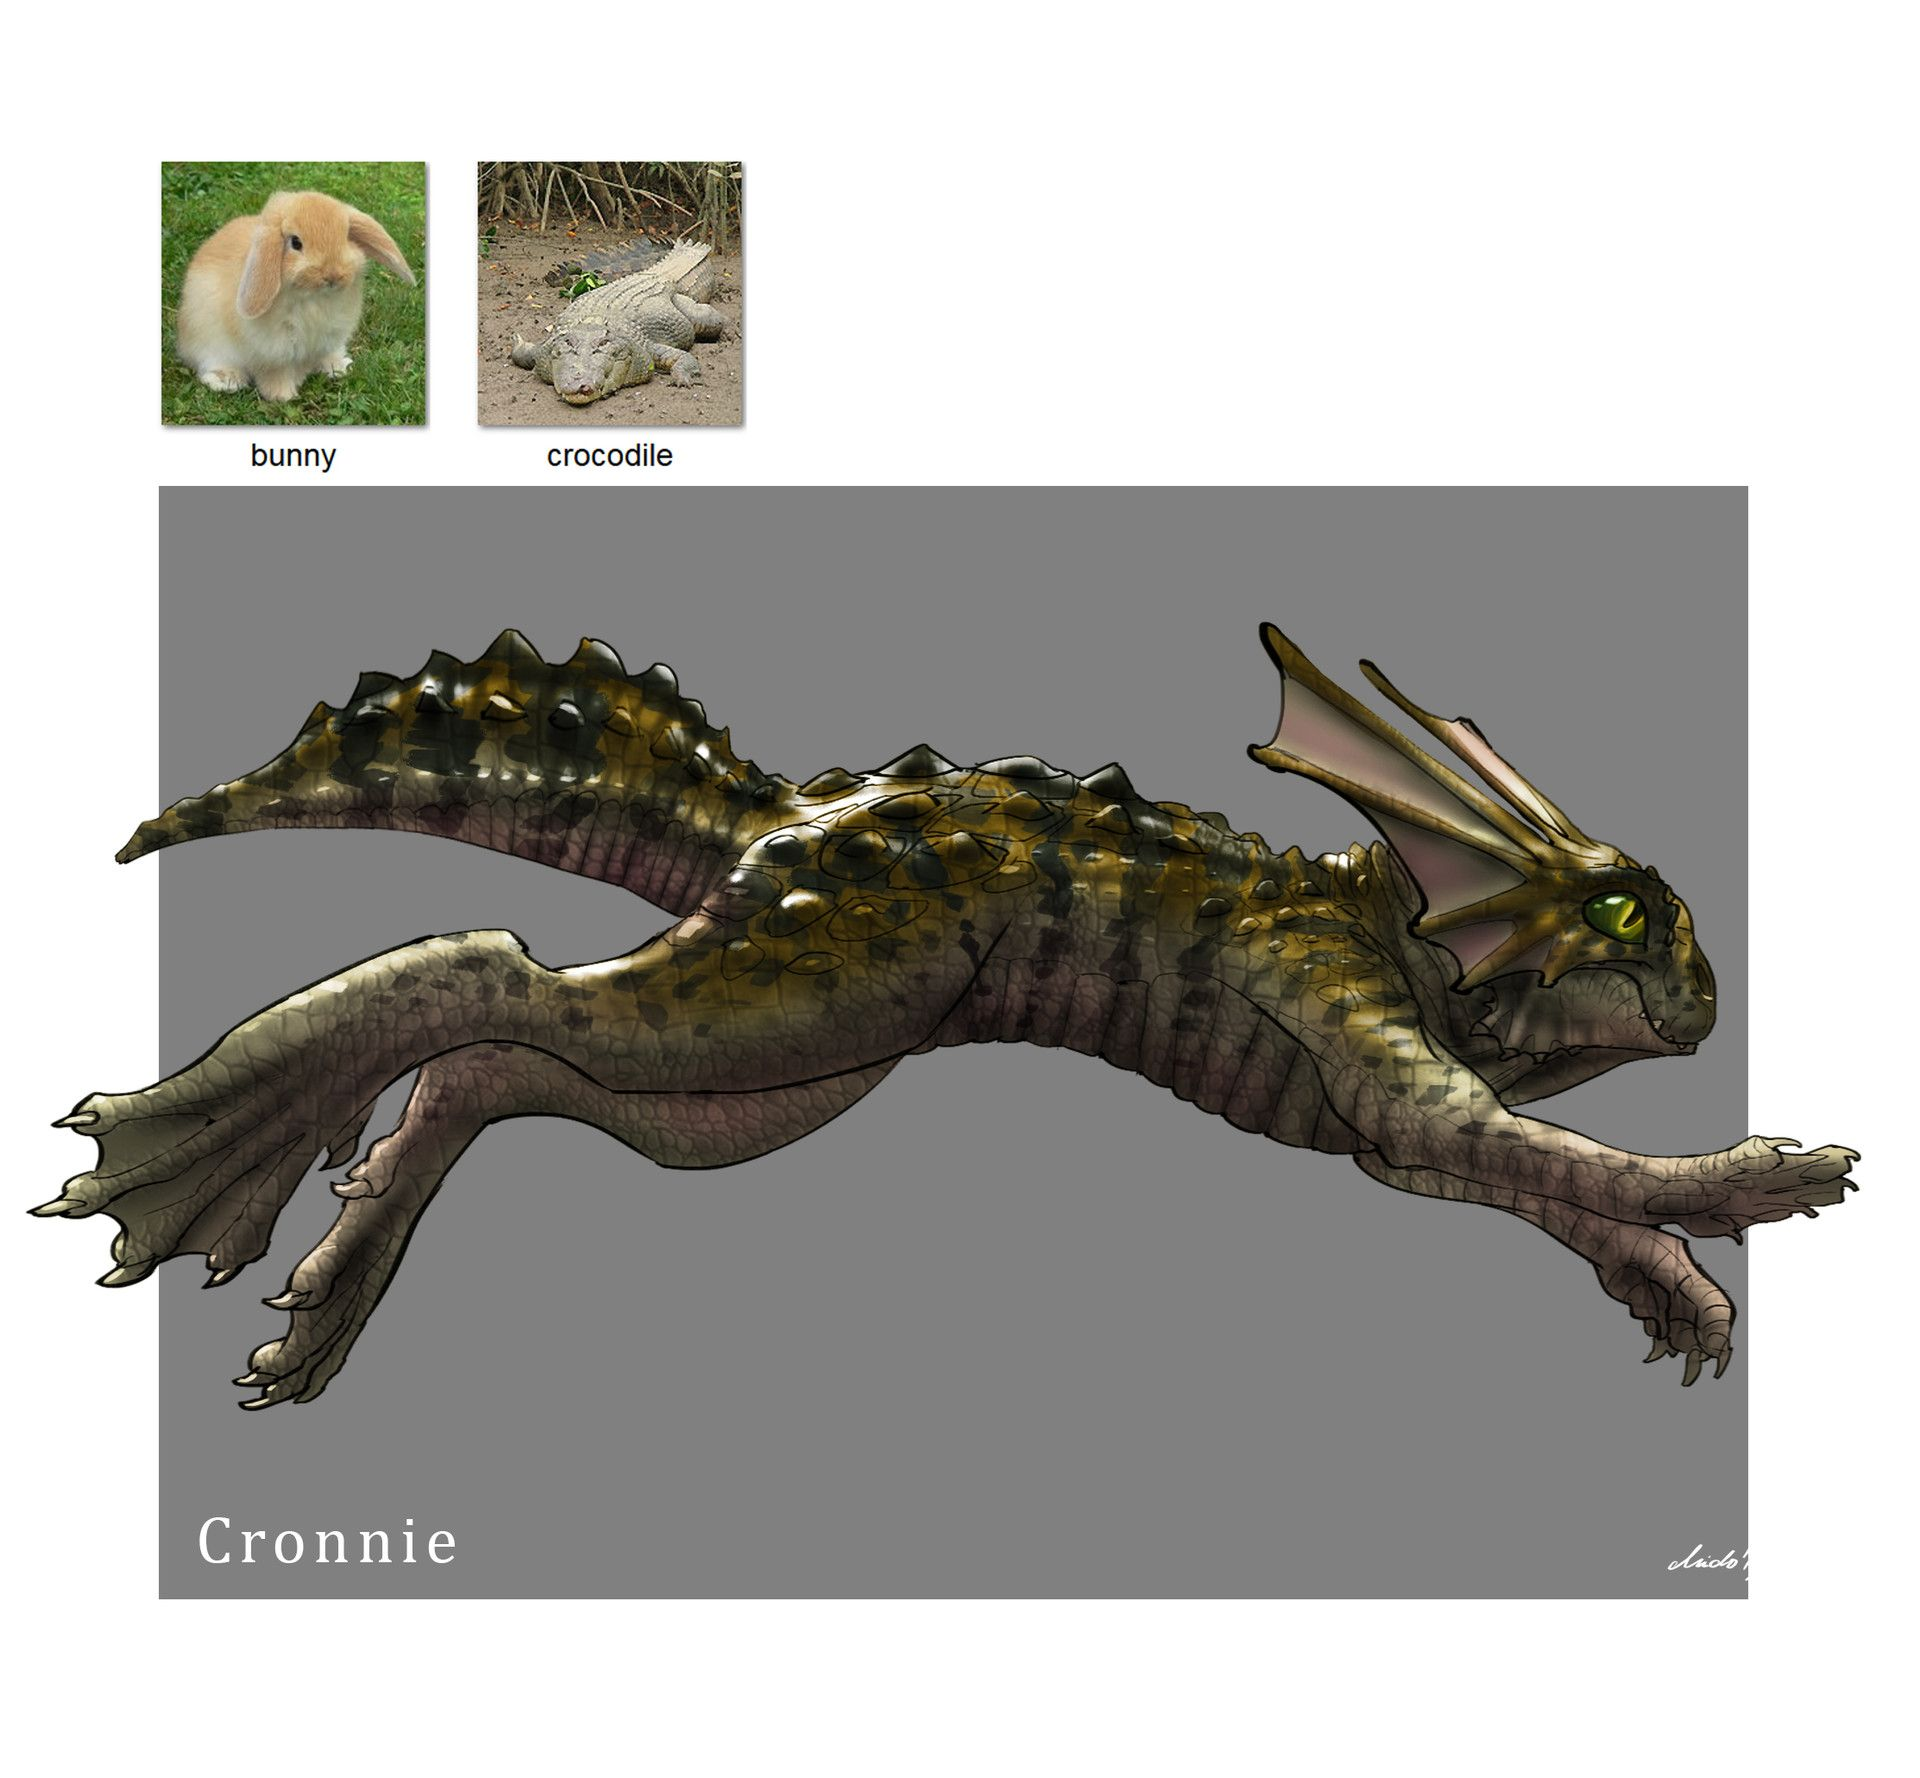 Ive discovered a random animal generator online that